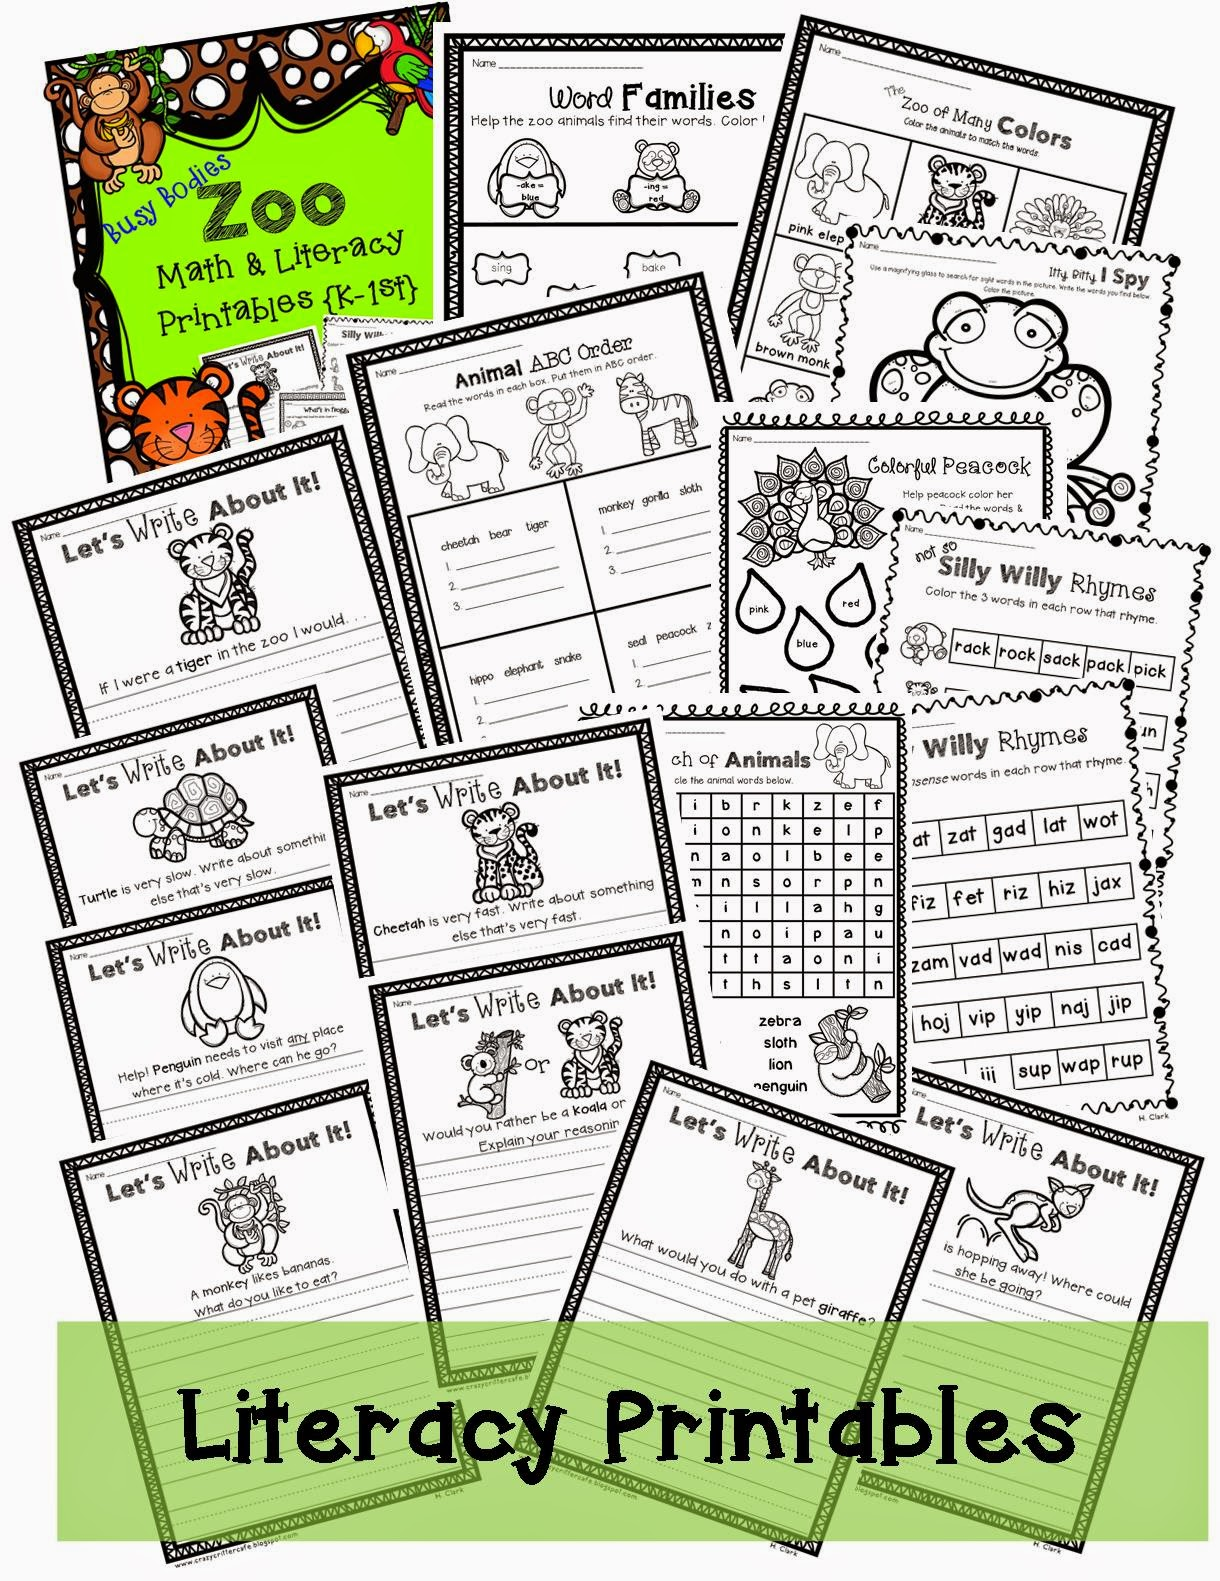 http://www.teacherspayteachers.com/Product/Busy-Bodies-Zoo-Theme-Math-Literacy-Printables-Print-Go-1386177